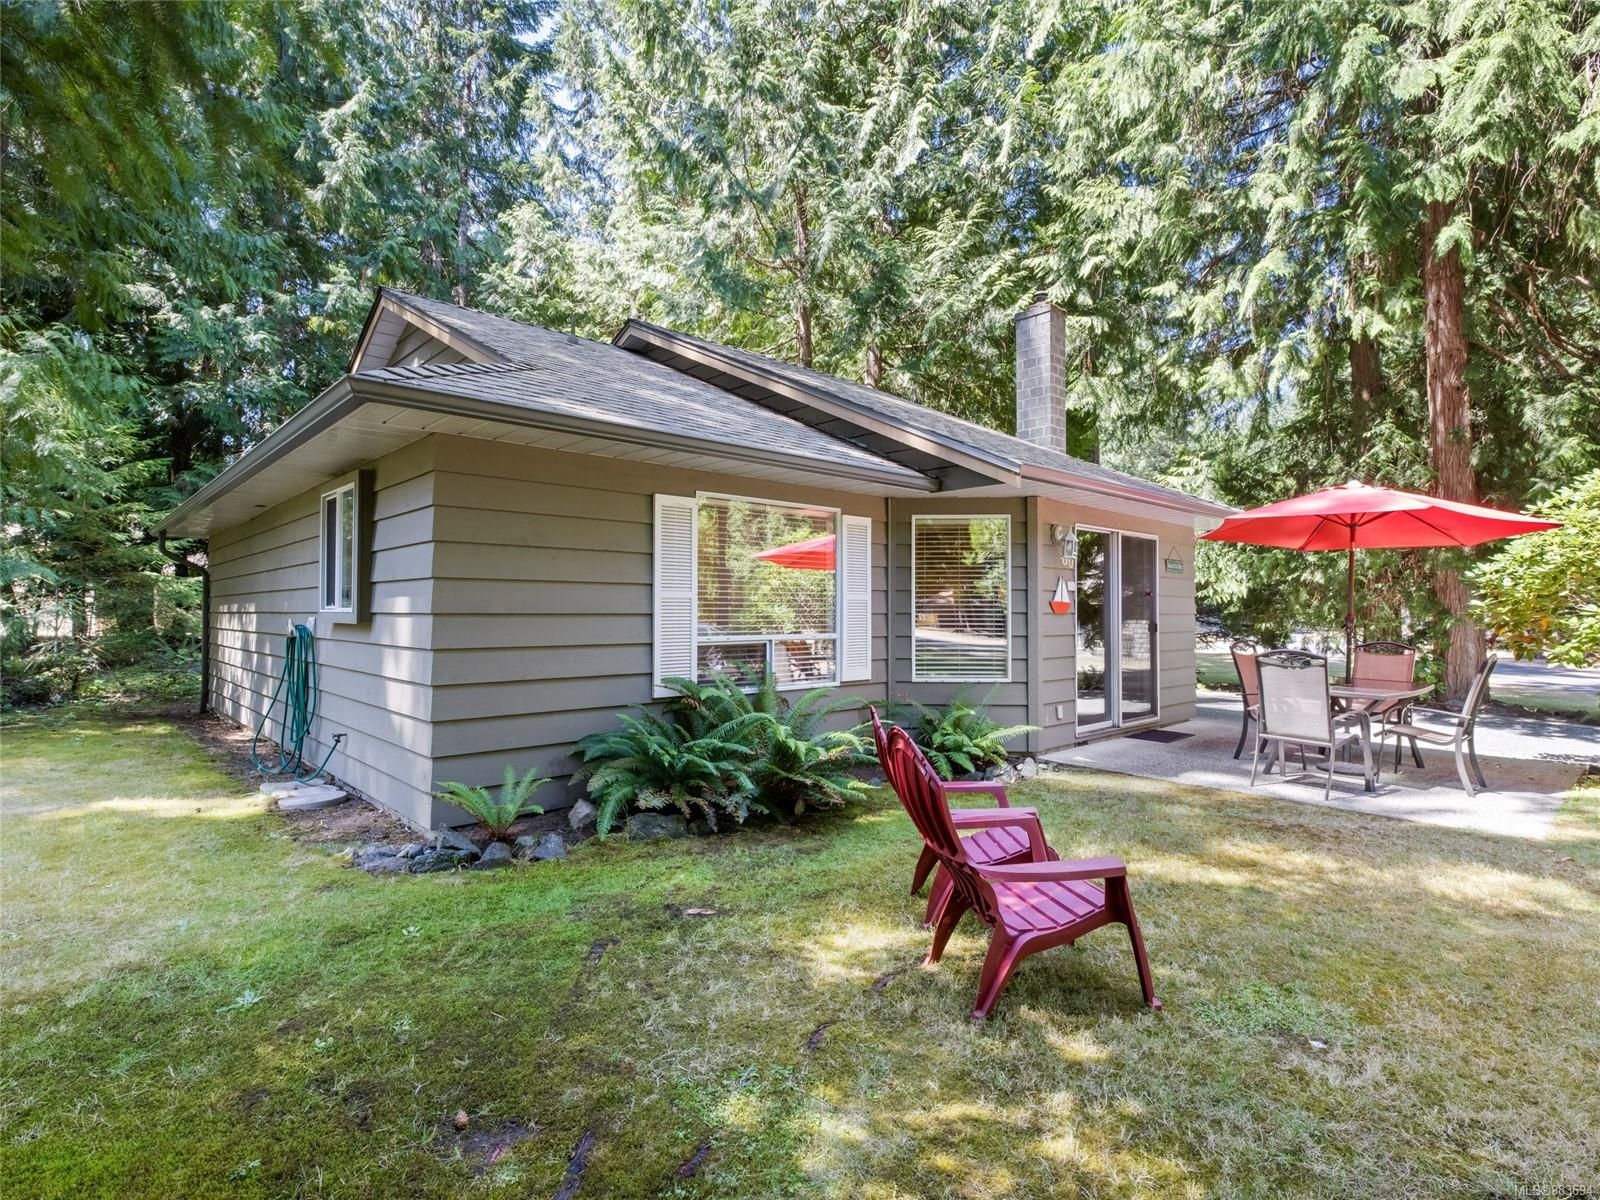 Main Photo: 60 1051 Resort Dr in : PQ Parksville Row/Townhouse for sale (Parksville/Qualicum)  : MLS®# 883694